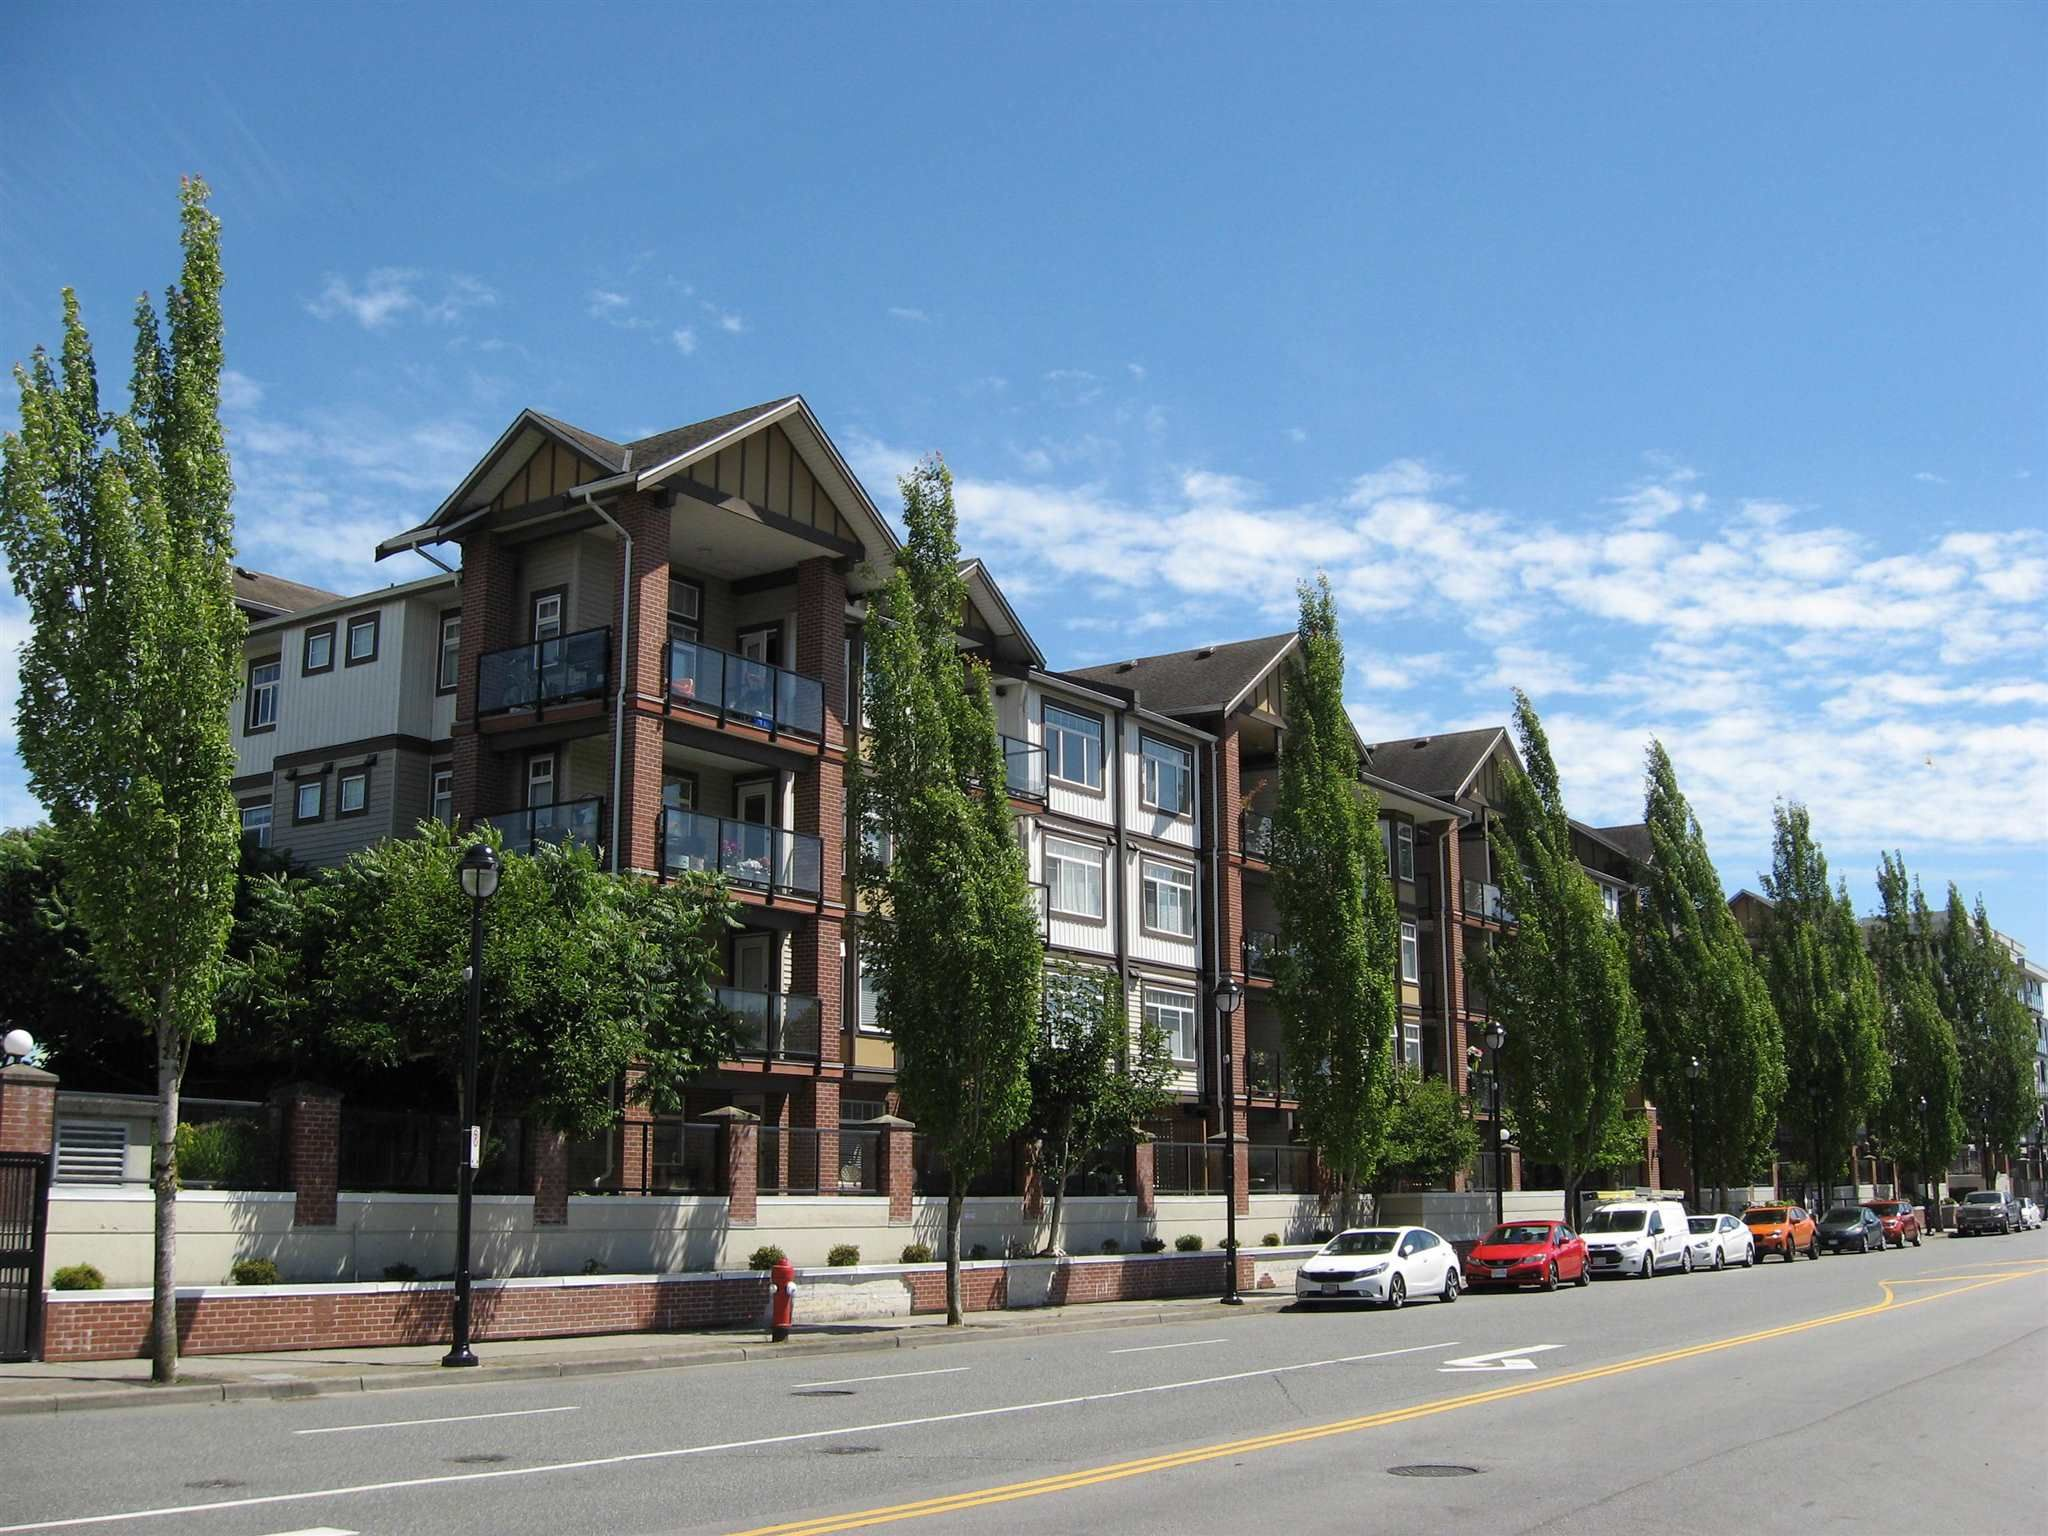 """Main Photo: 430 5660 201A Street in Langley: Langley City Condo for sale in """"Paddington Station"""" : MLS®# R2596391"""